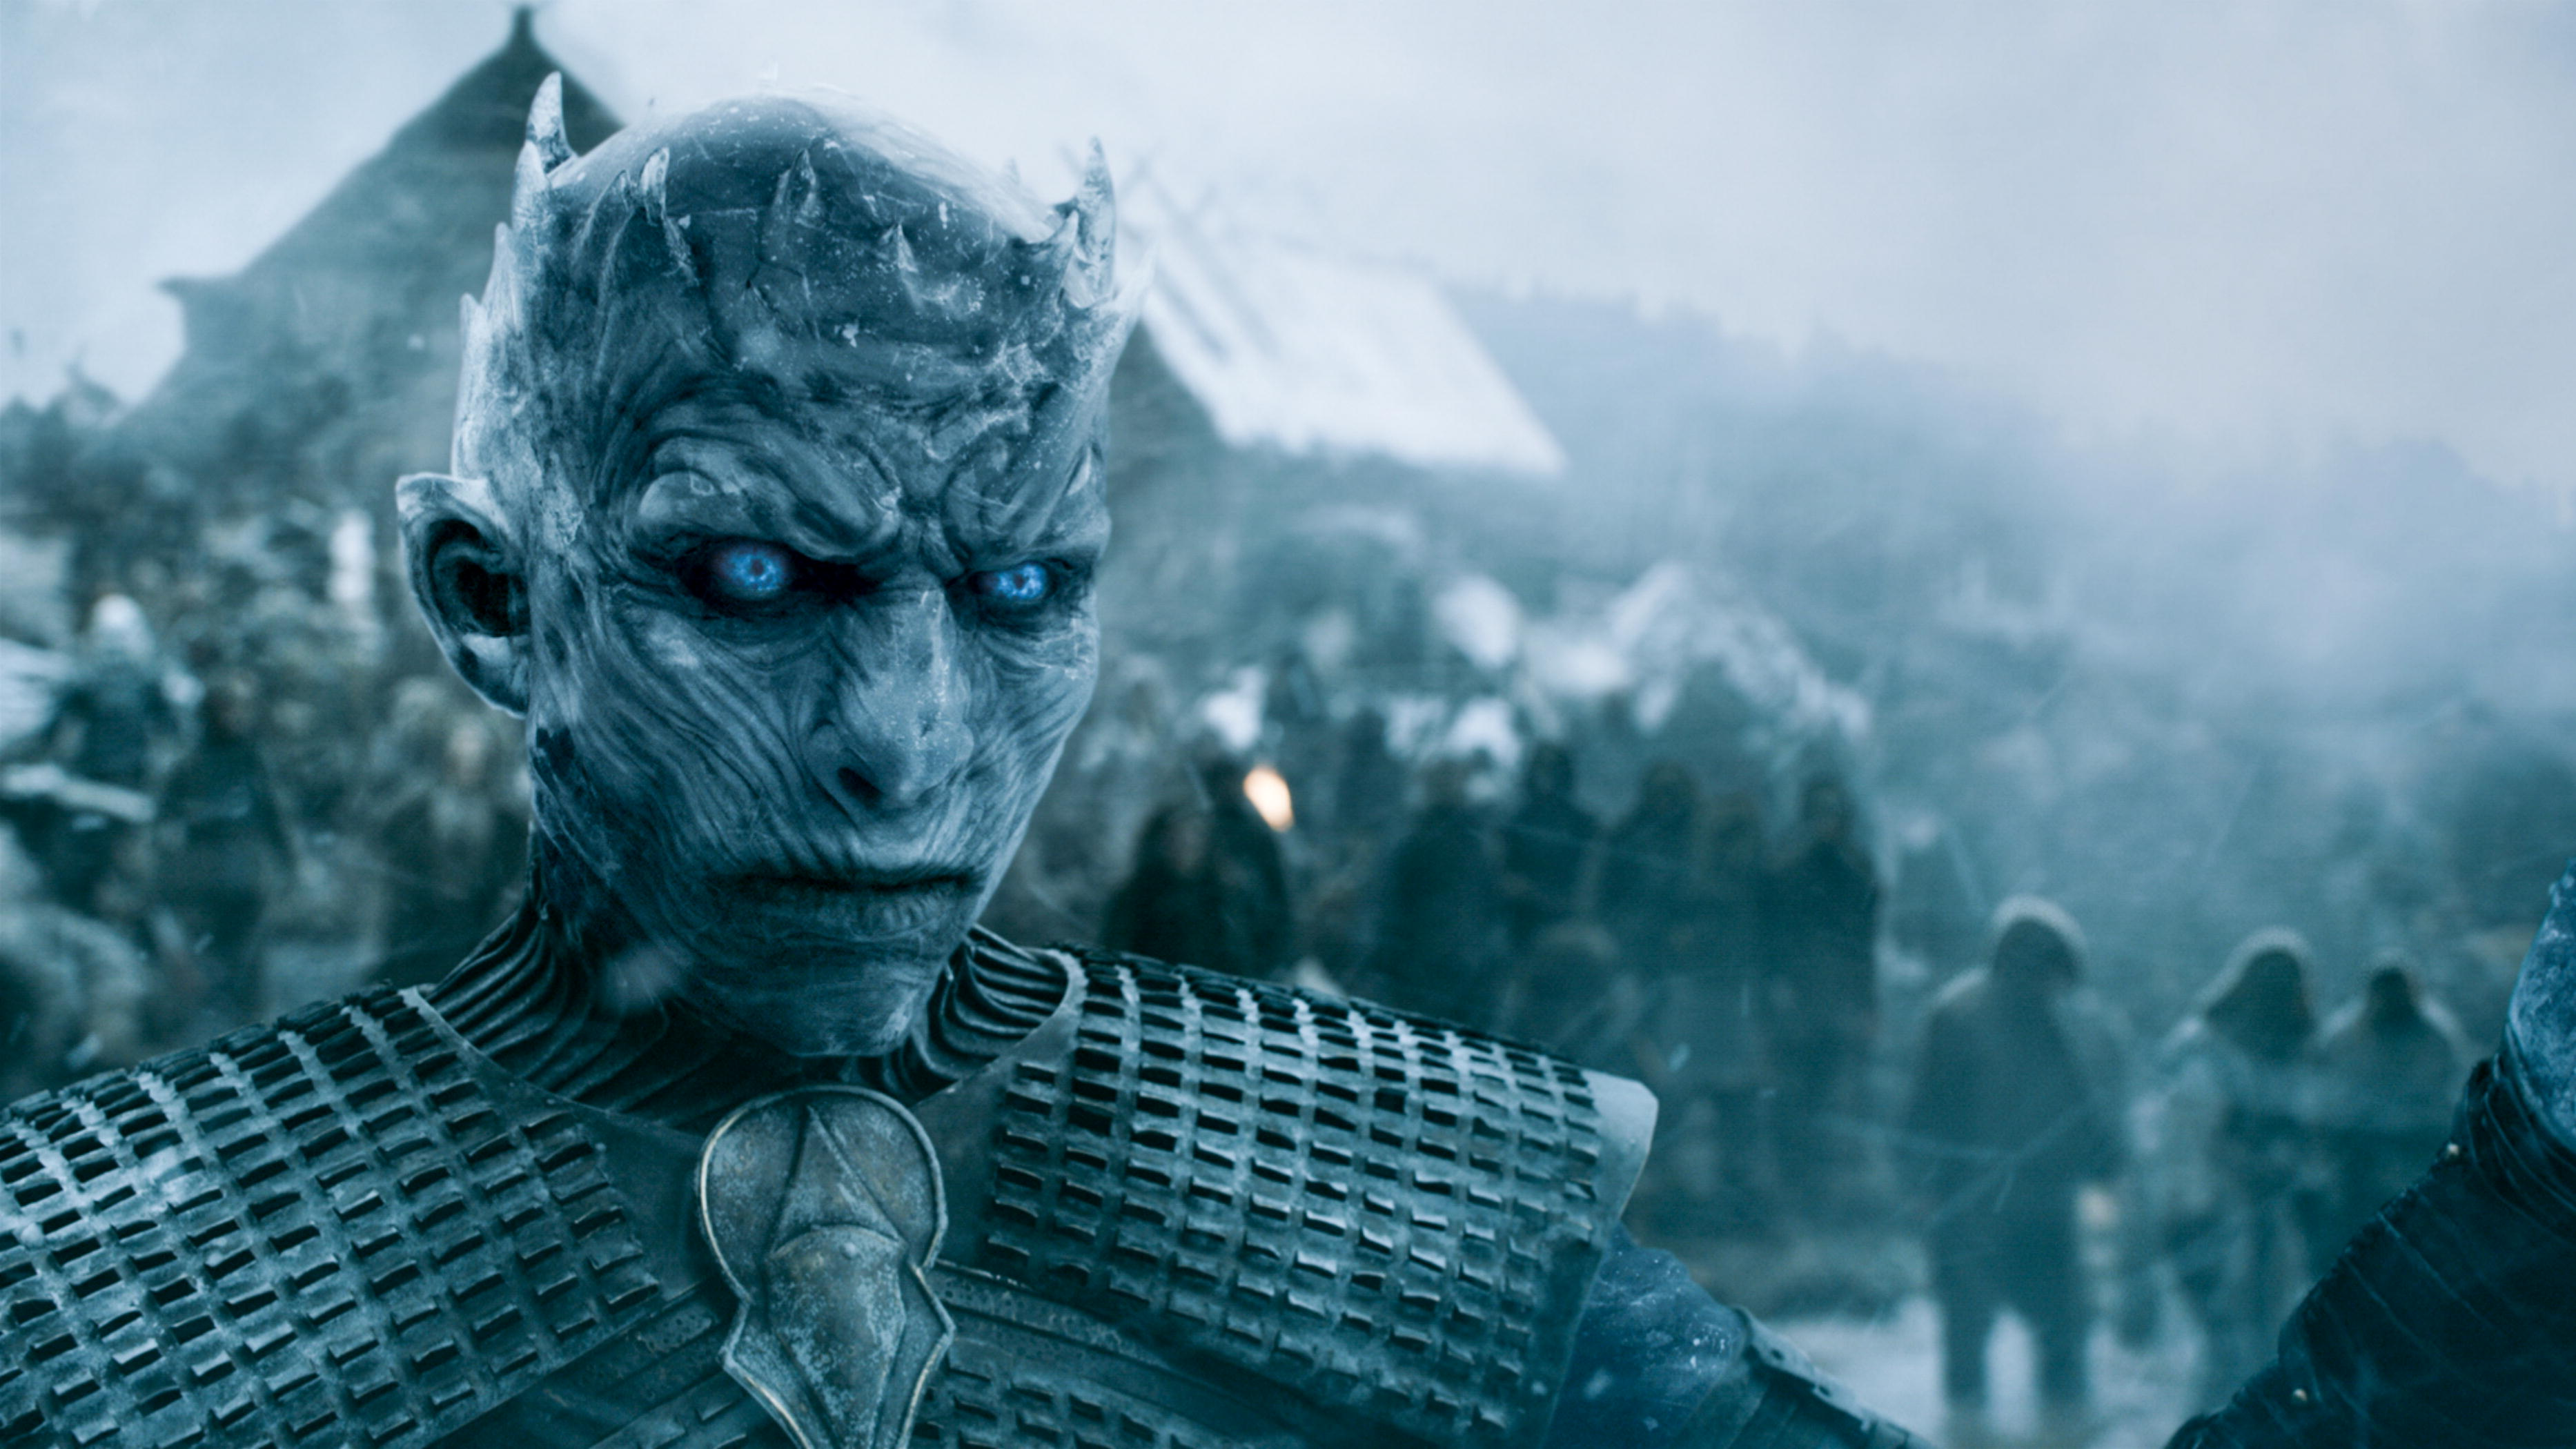 hottest game of thrones men night king